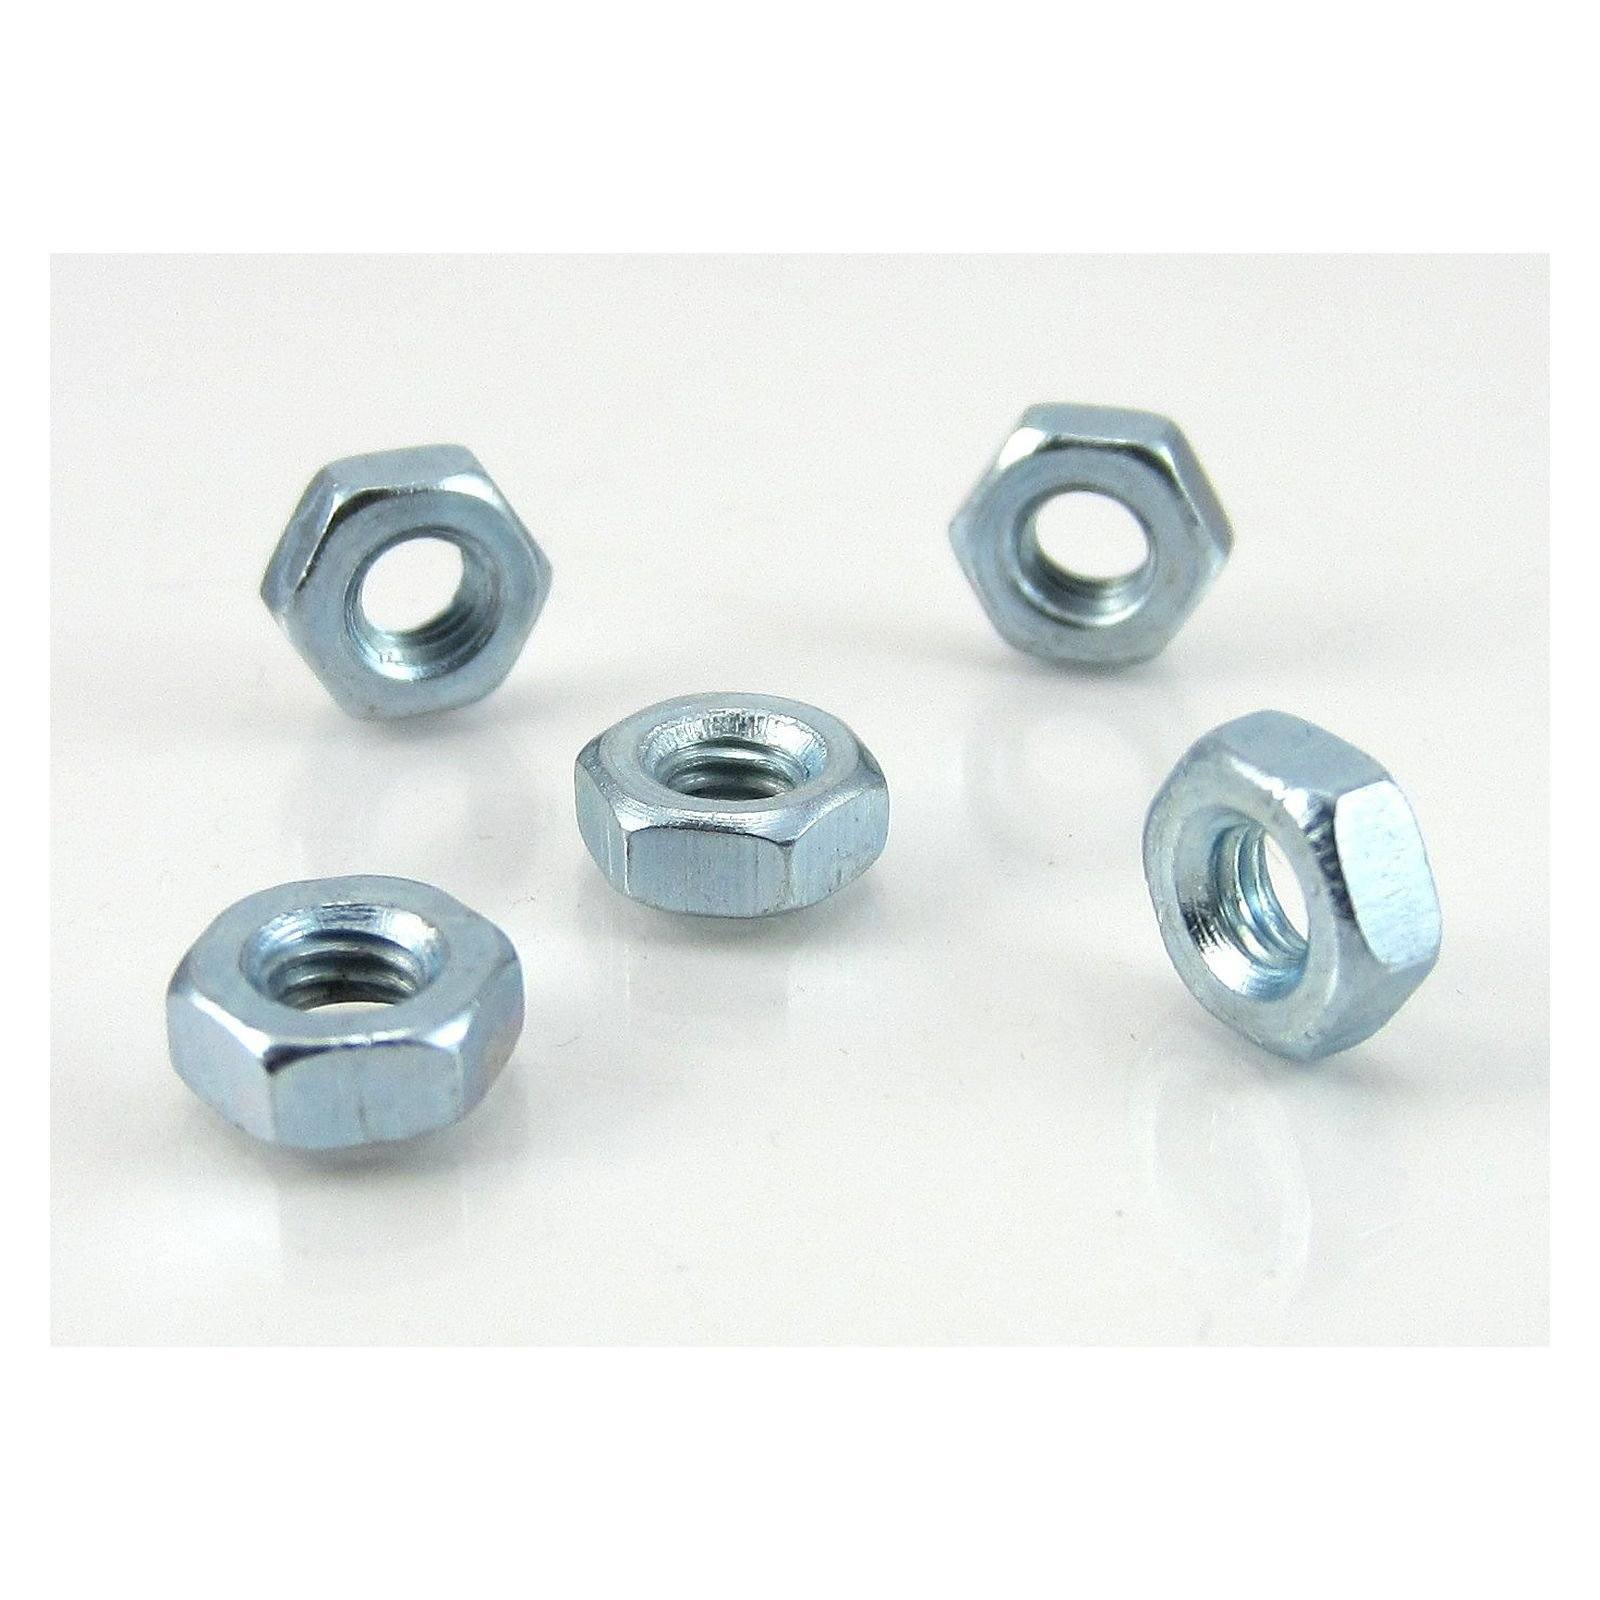 TRB RC 3mm Hex Nut 5.5mm Hex (5) - trb-rc-bearings